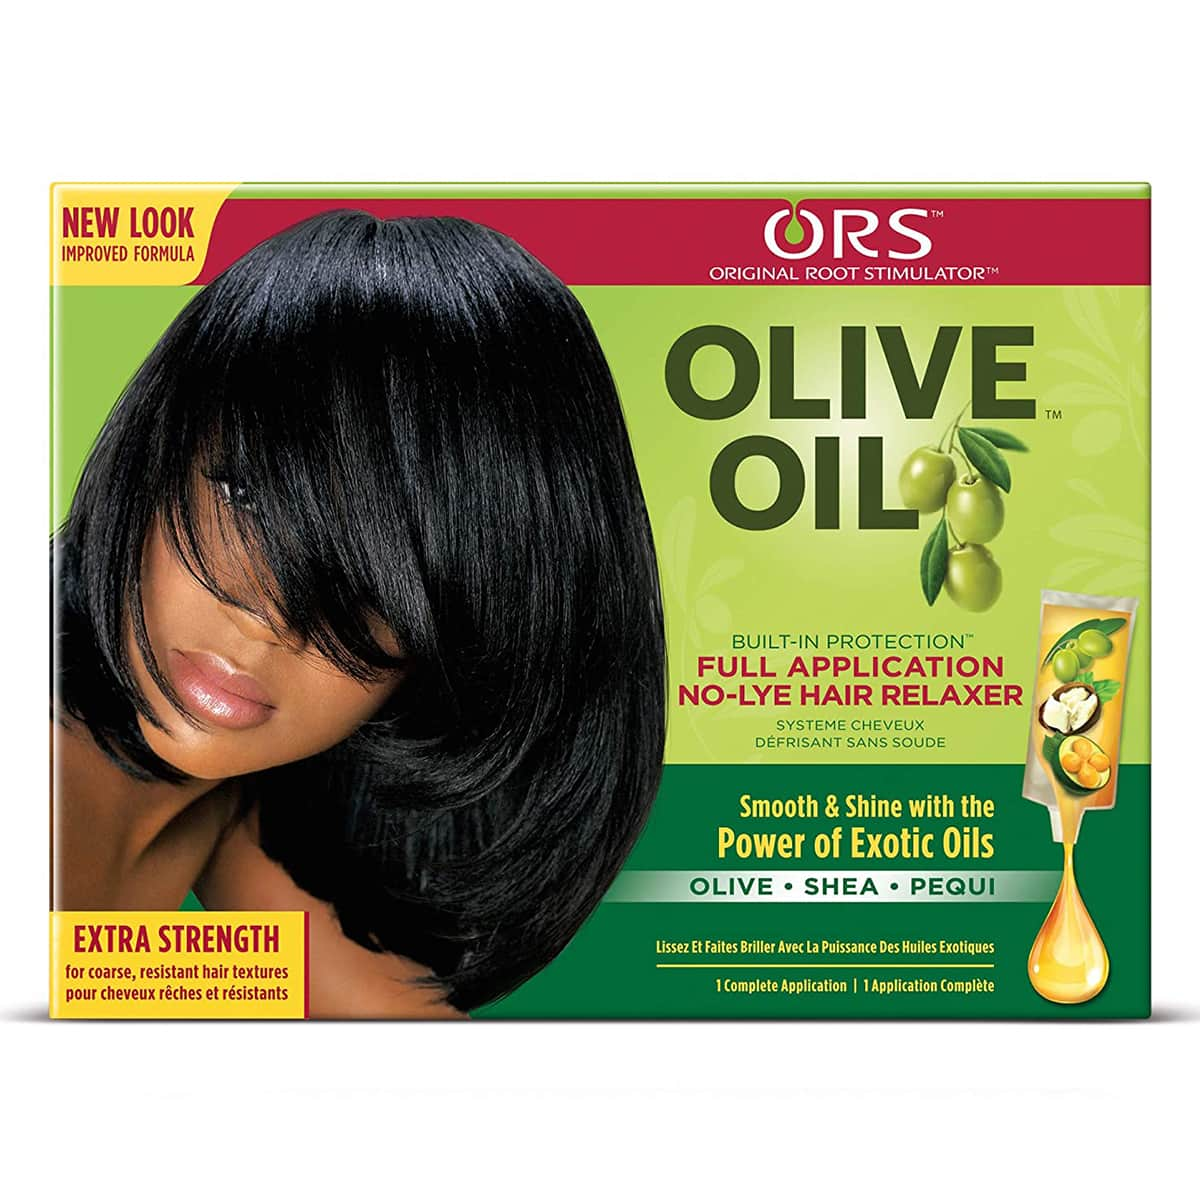 Buy Organic Root Stimulator (ORS) Olive Oil No-lye Hair Relaxer System Kit (Extra Strength)